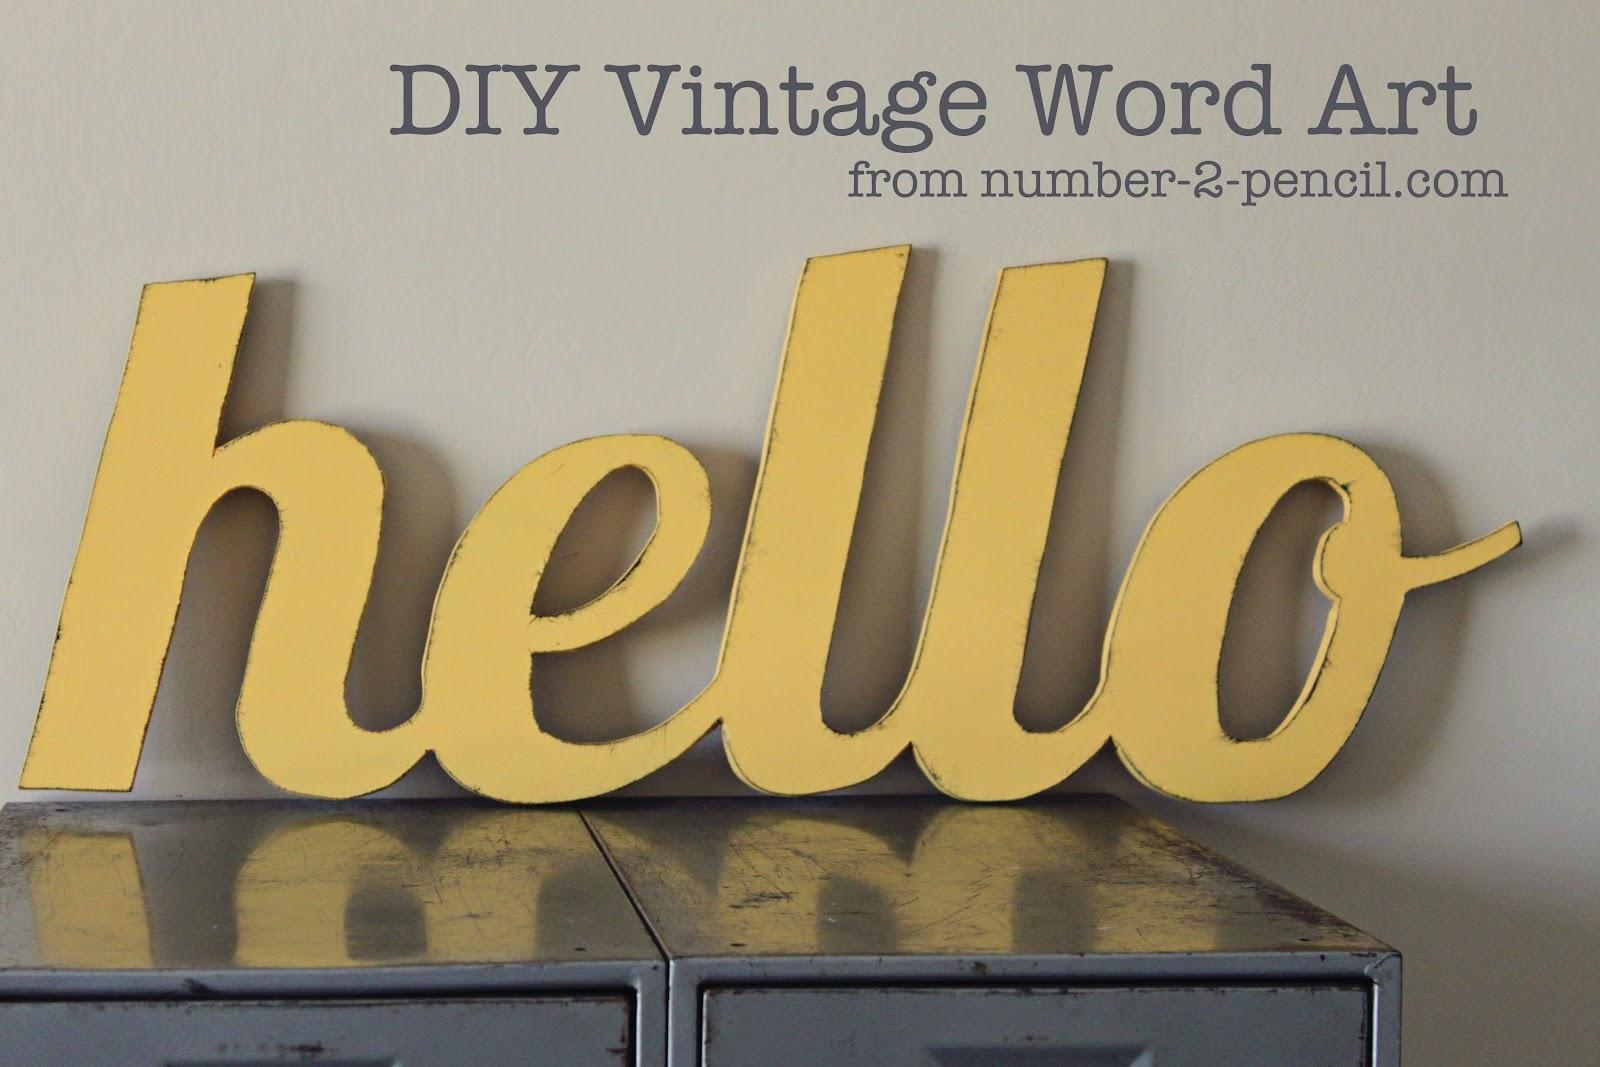 Diy Vintage Word Art – No. 2 Pencil Pertaining To Wooden Word Art For Walls (Photo 8 of 20)